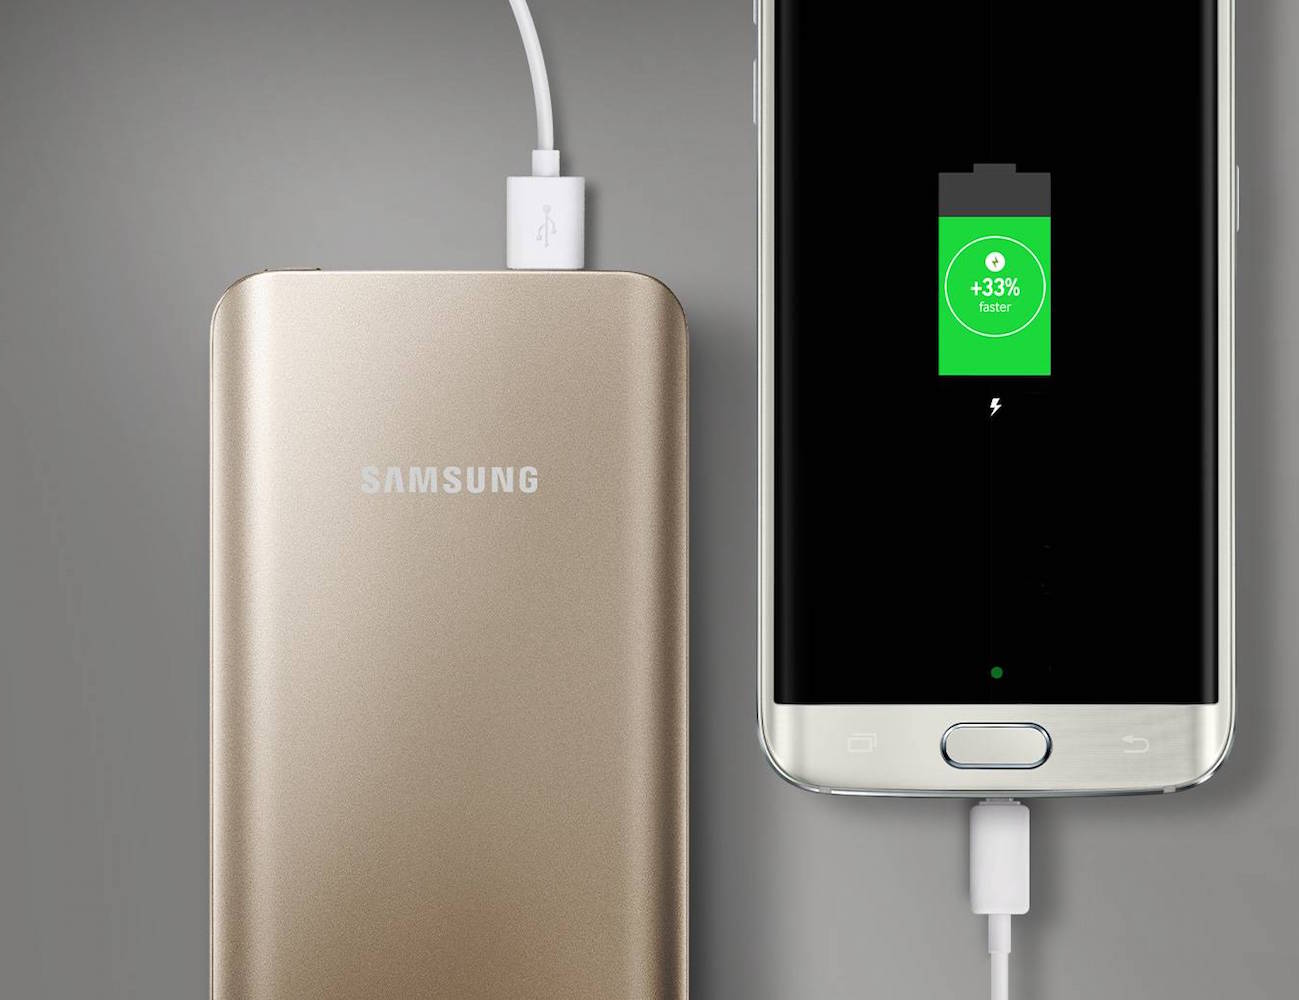 samsung-fast-charge-5200-mah-battery-pack-03